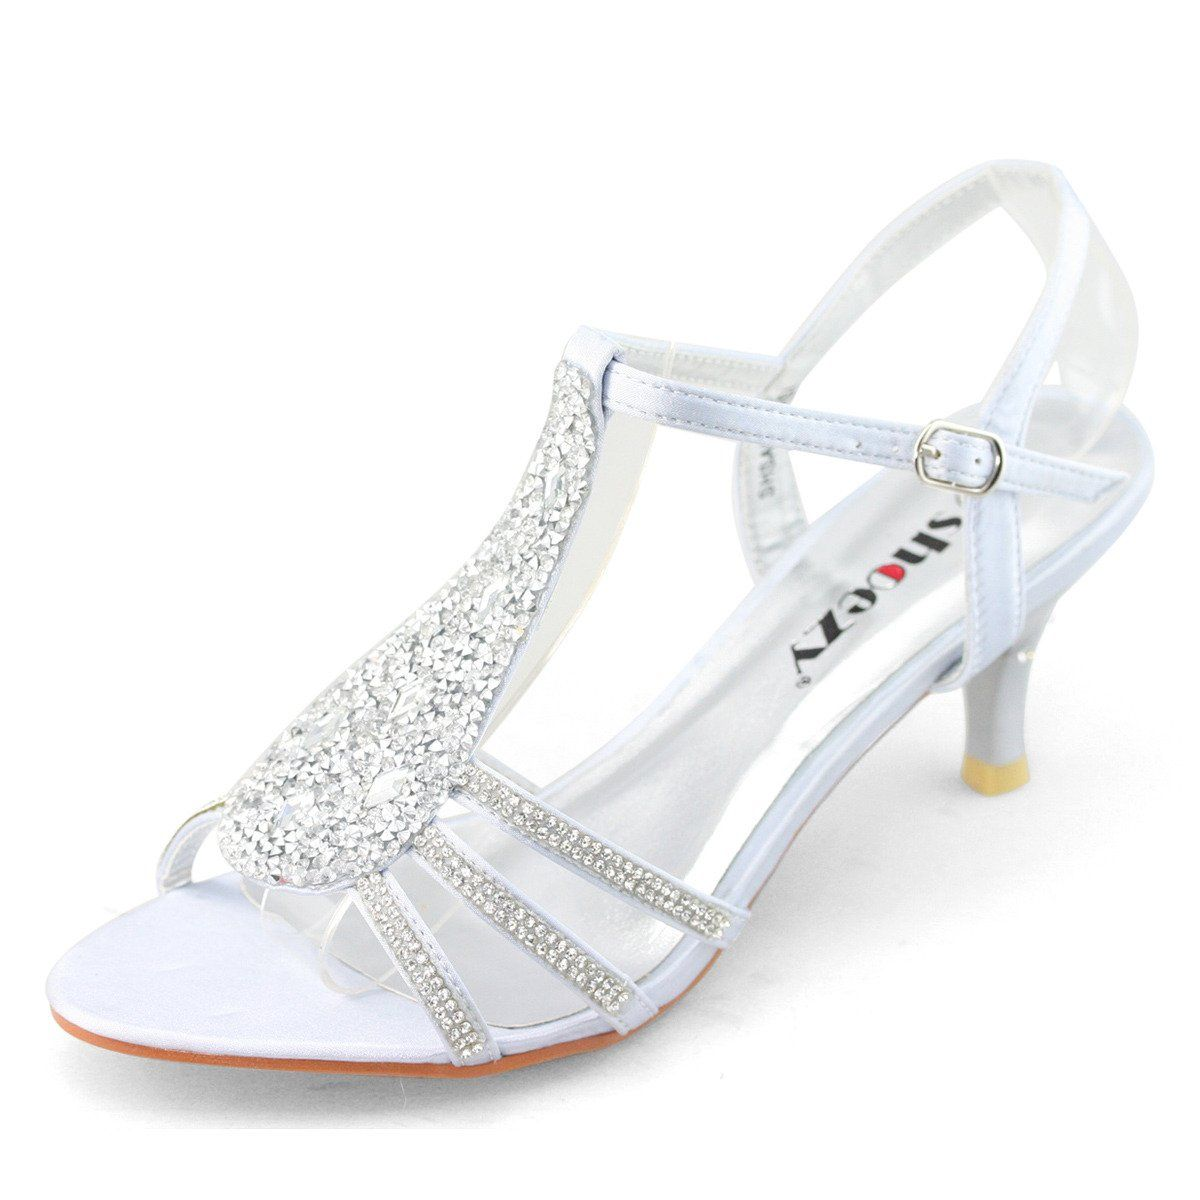 Amazon: SHOEZY New Women Ladies Low Heels Wedding Prom Shoes Diamant  Strappy Sandals